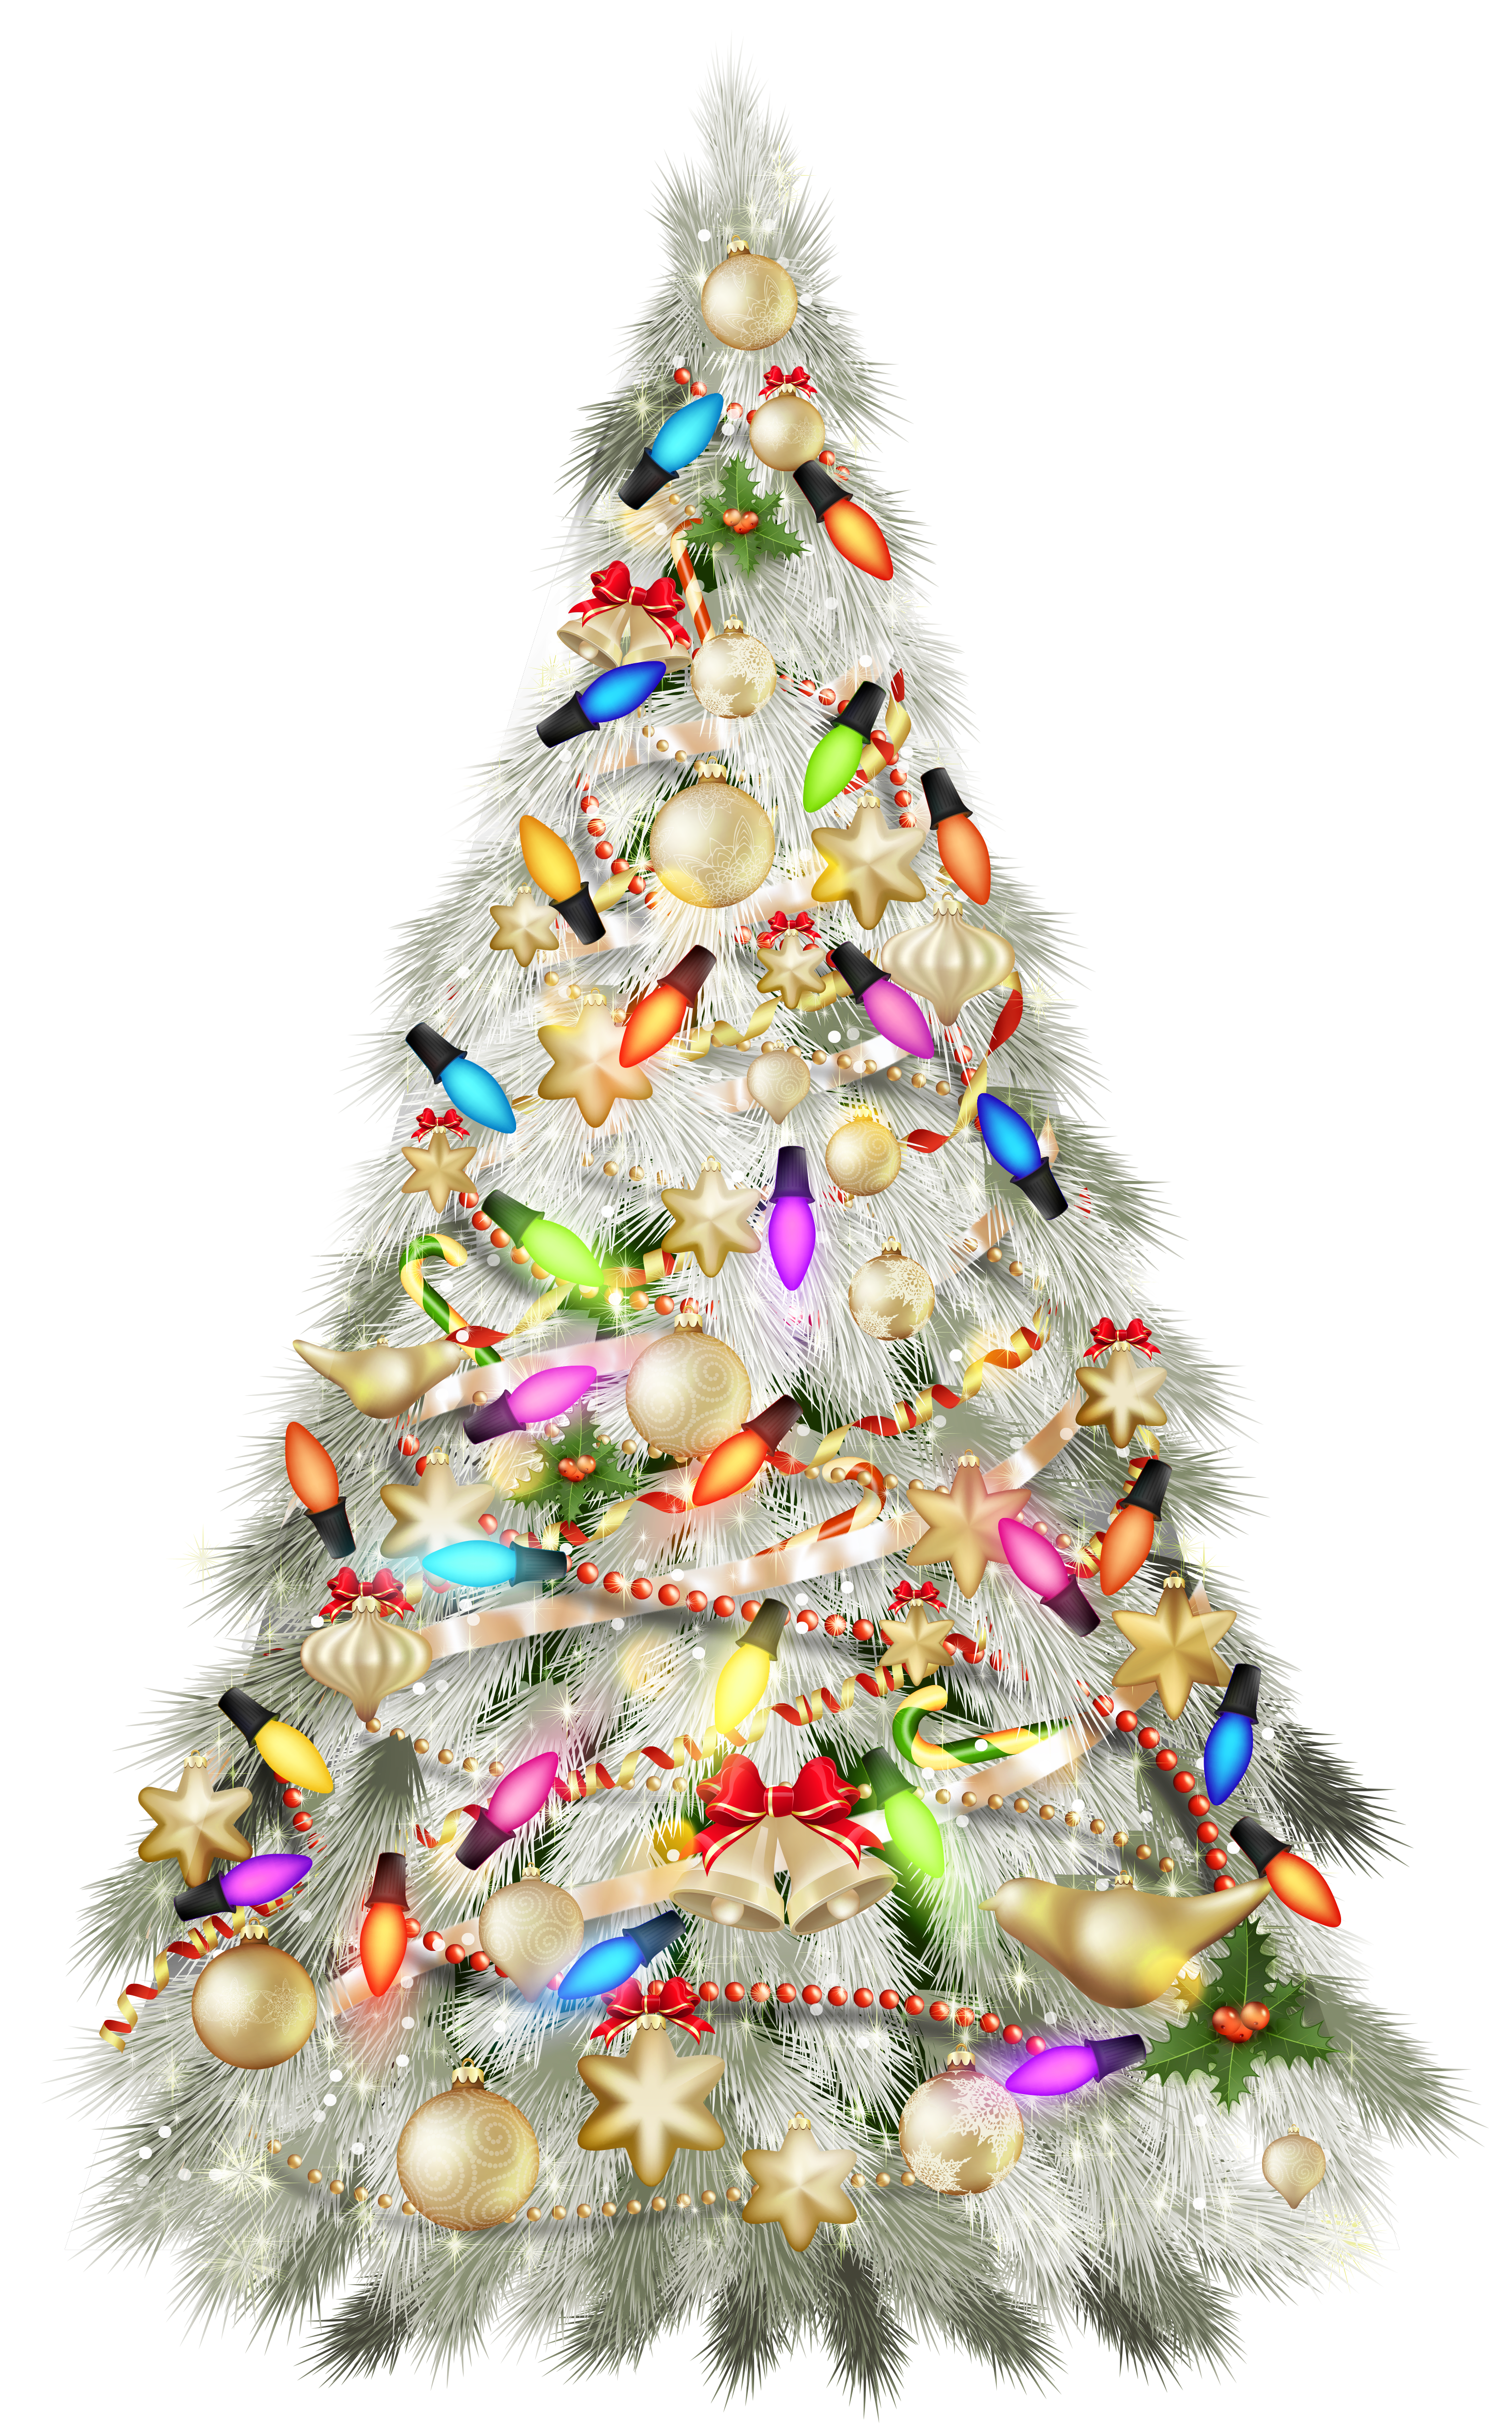 Silver christmas tree clipart svg free download Transparent Christmas Silver Deco Tree Clipart | Gallery ... svg free download